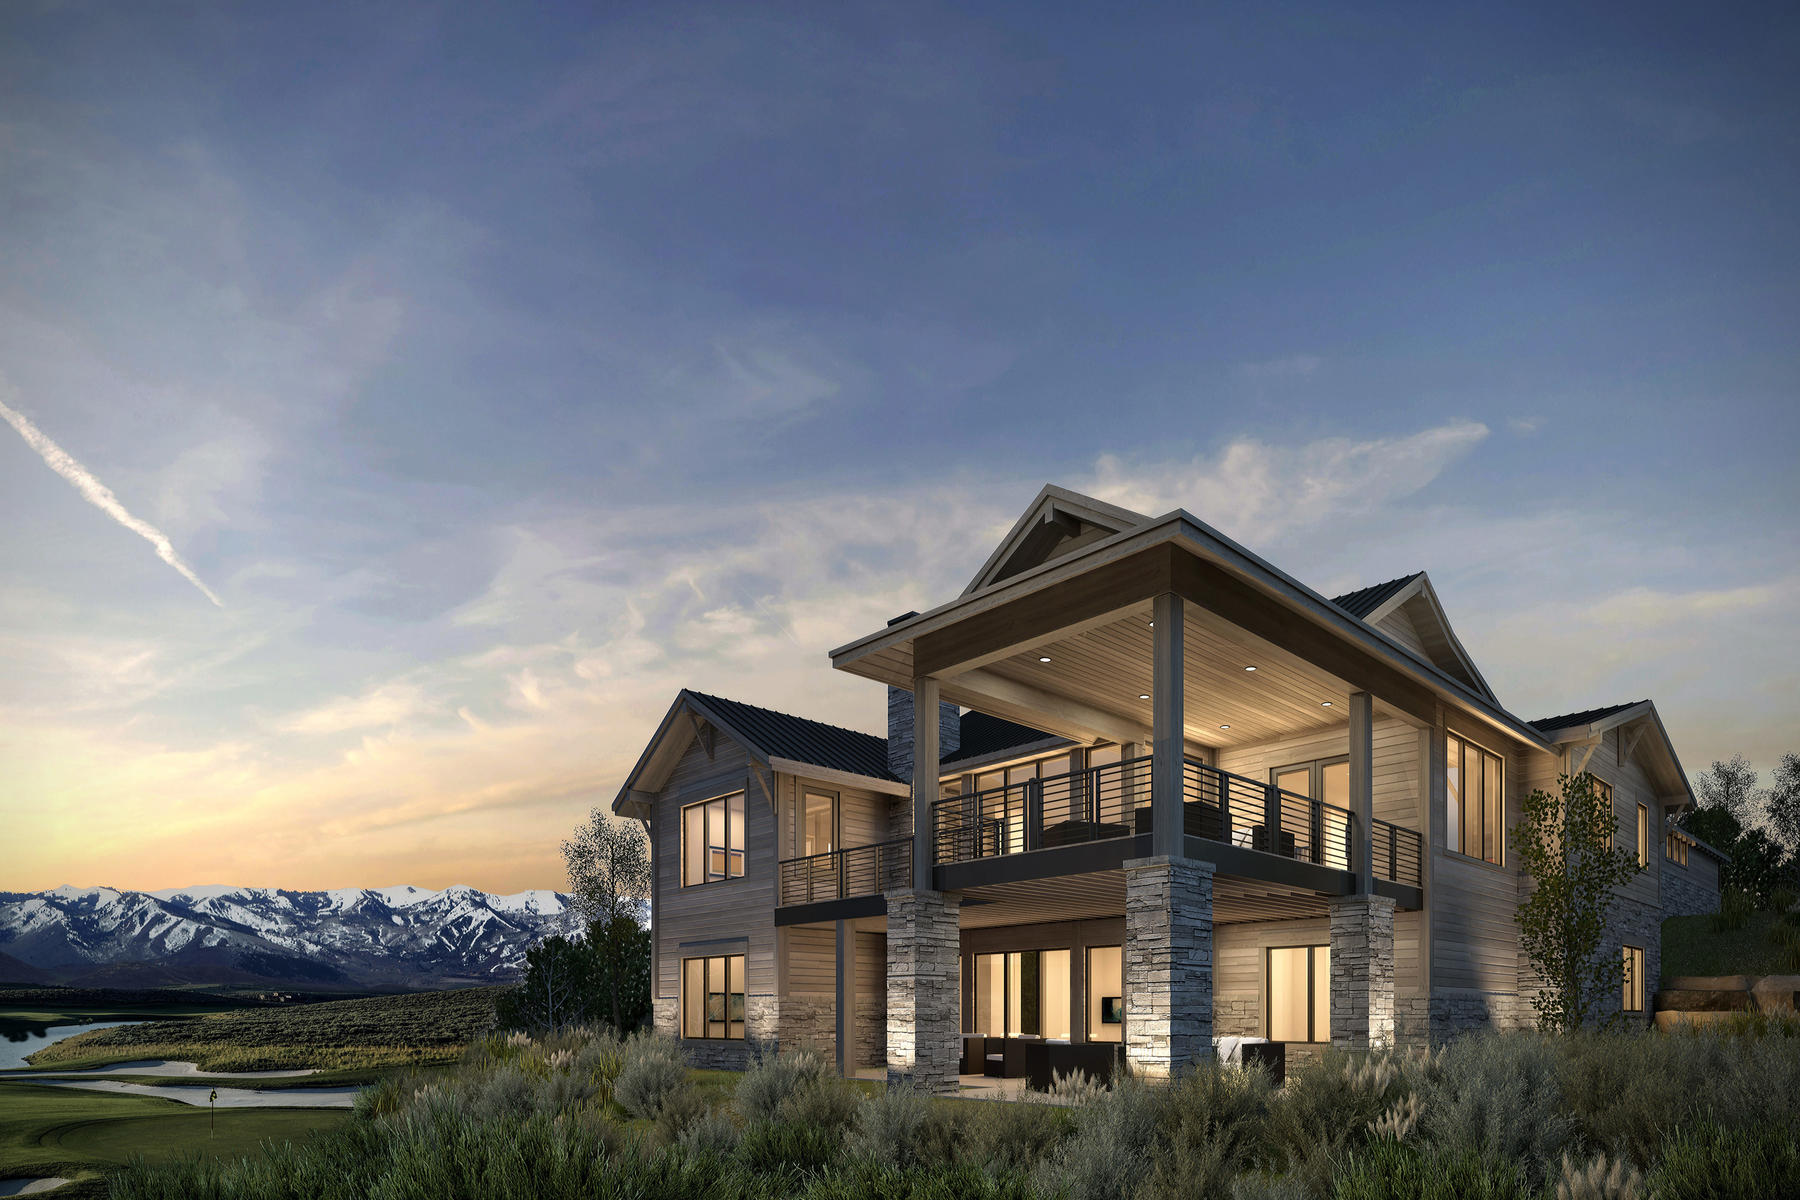 Single Family Home for Sale at Incredible homesite on Promontory's Nicklaus Golf Course 6791 W Golden Bear Lp Lot 49 Park City, Utah 84098 United States